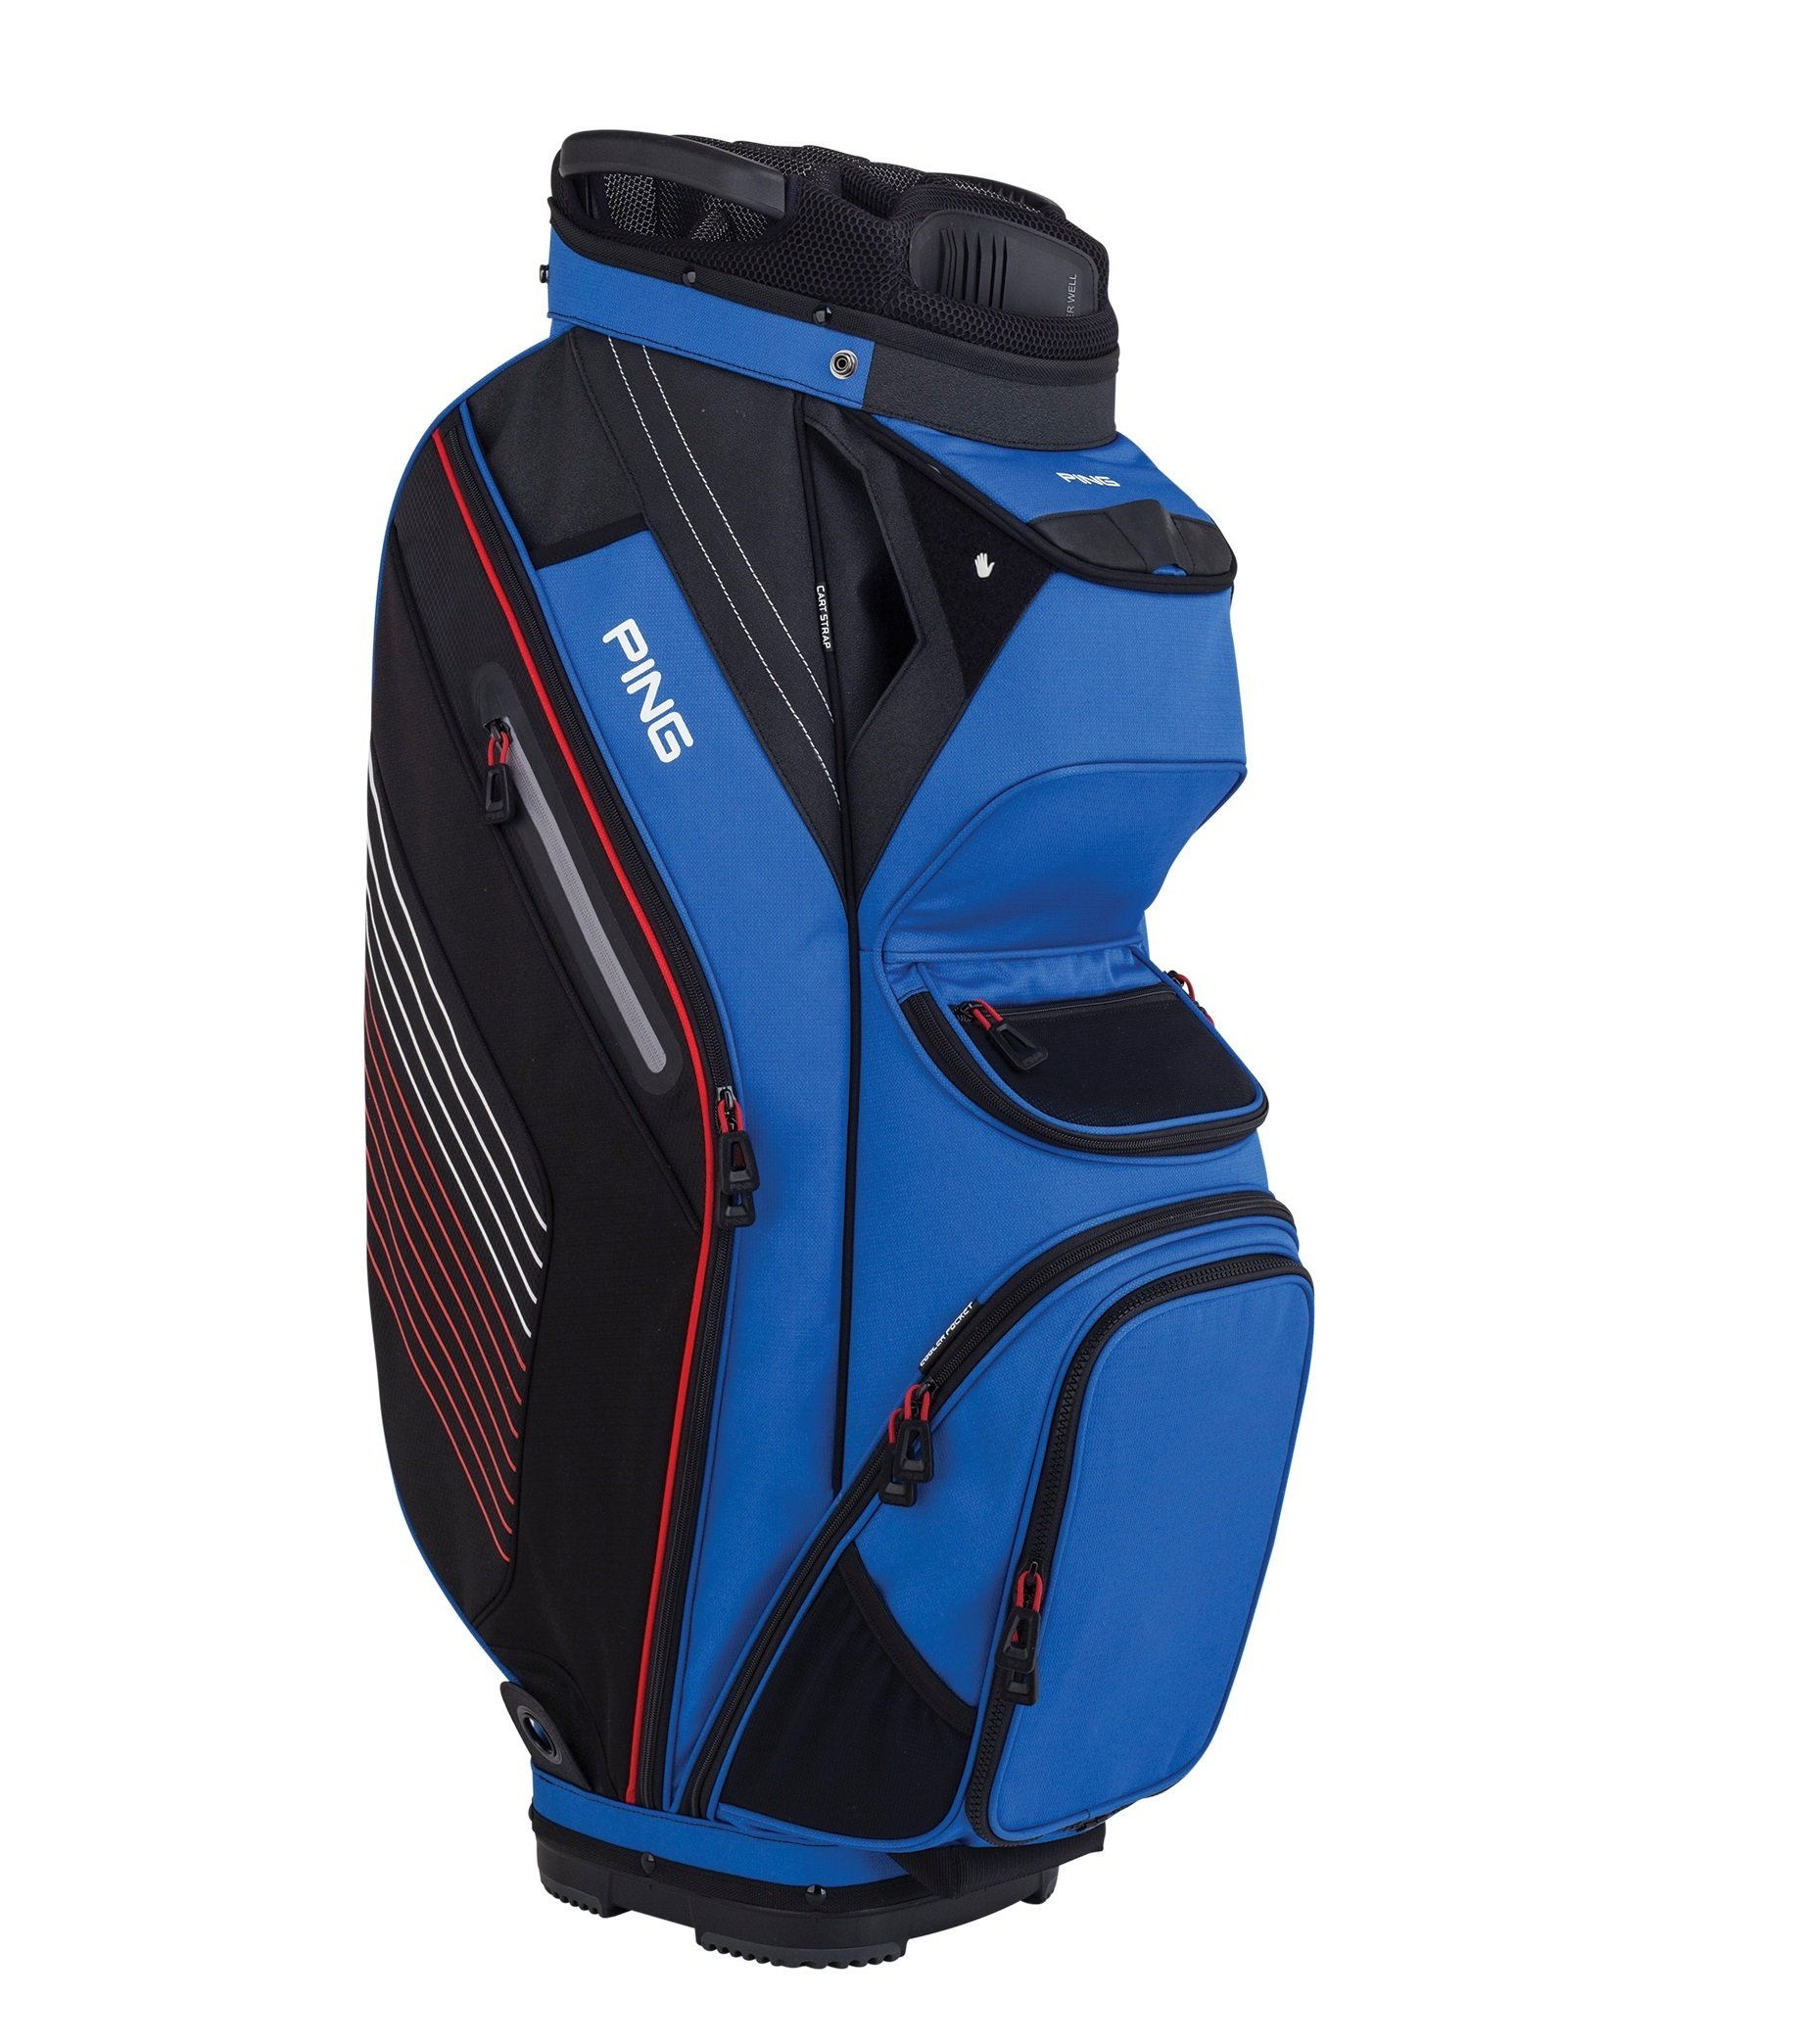 PING 2018 PIONEER 164 CART GOLF BAG 12 BLUE/BLACK/RED